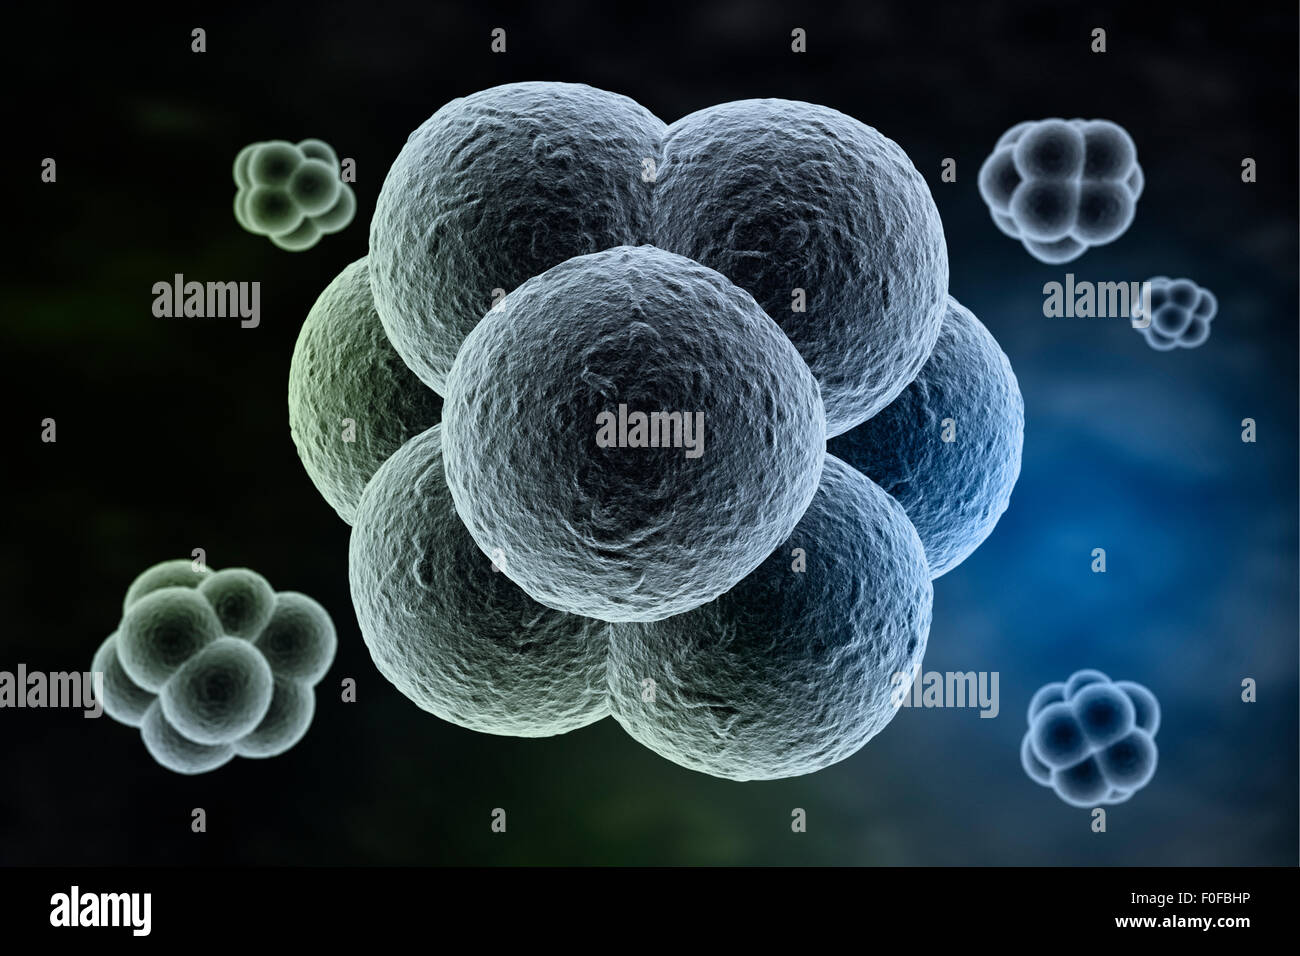 Abstract cells in division phase - Stock Image